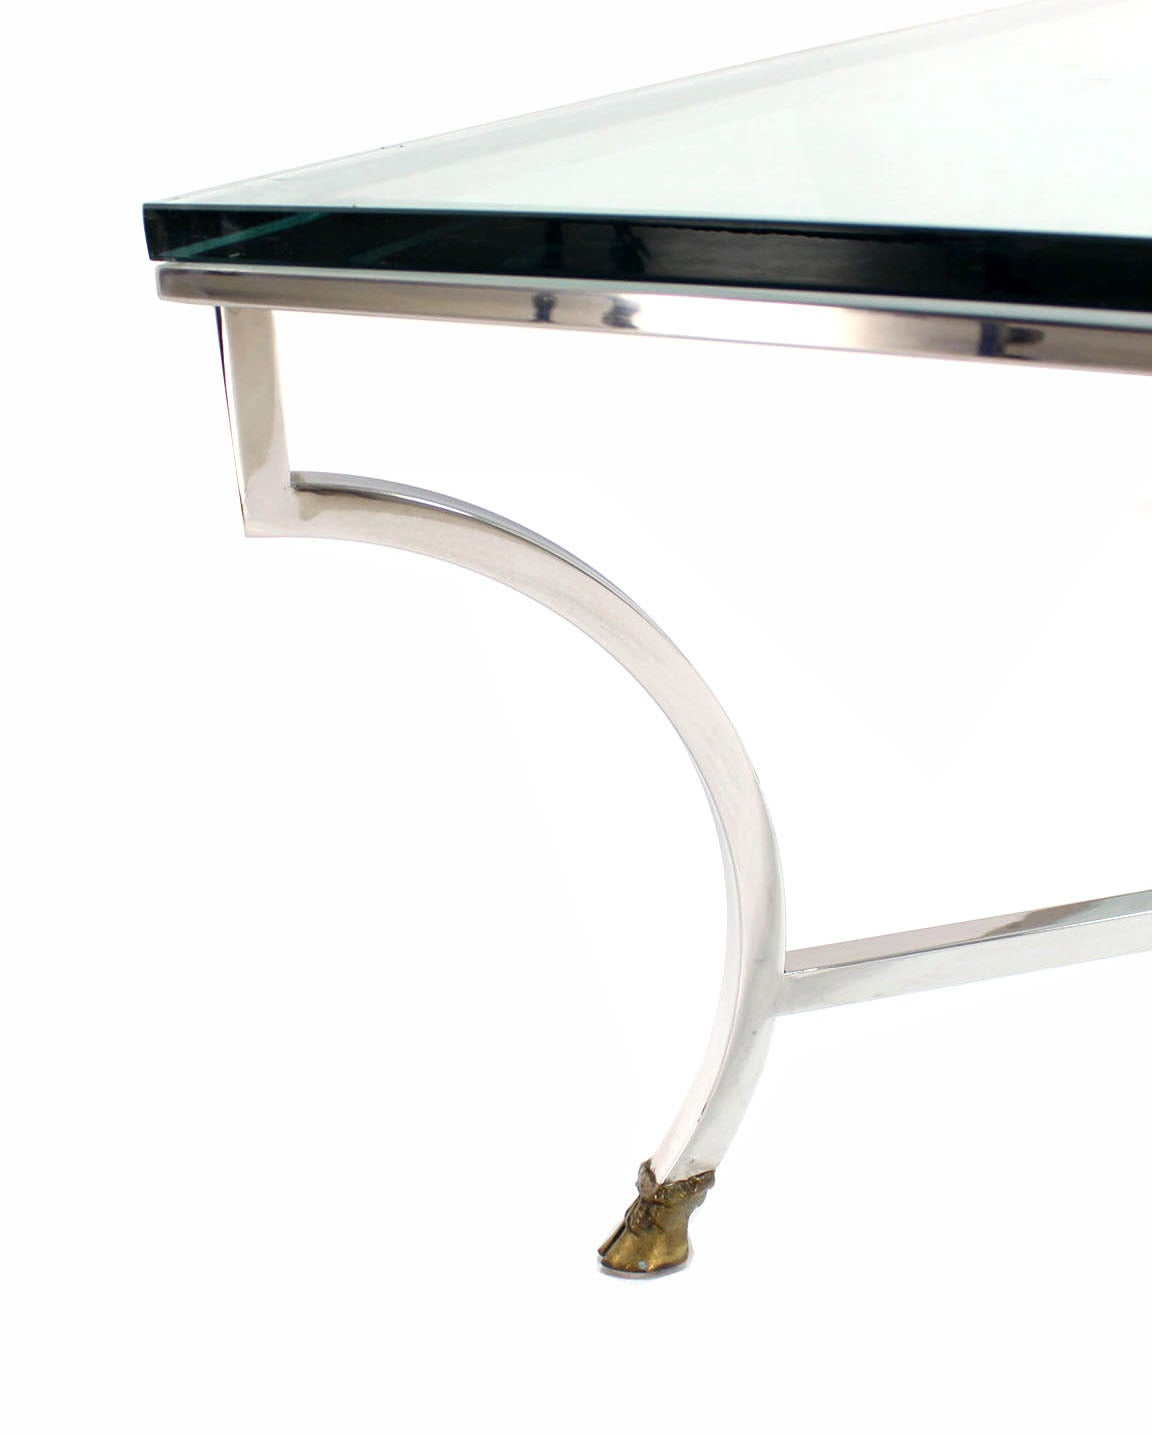 Glass Top Square Coffee Table With Chrome And Brass Hoof Feet Base For Sale At 1stdibs